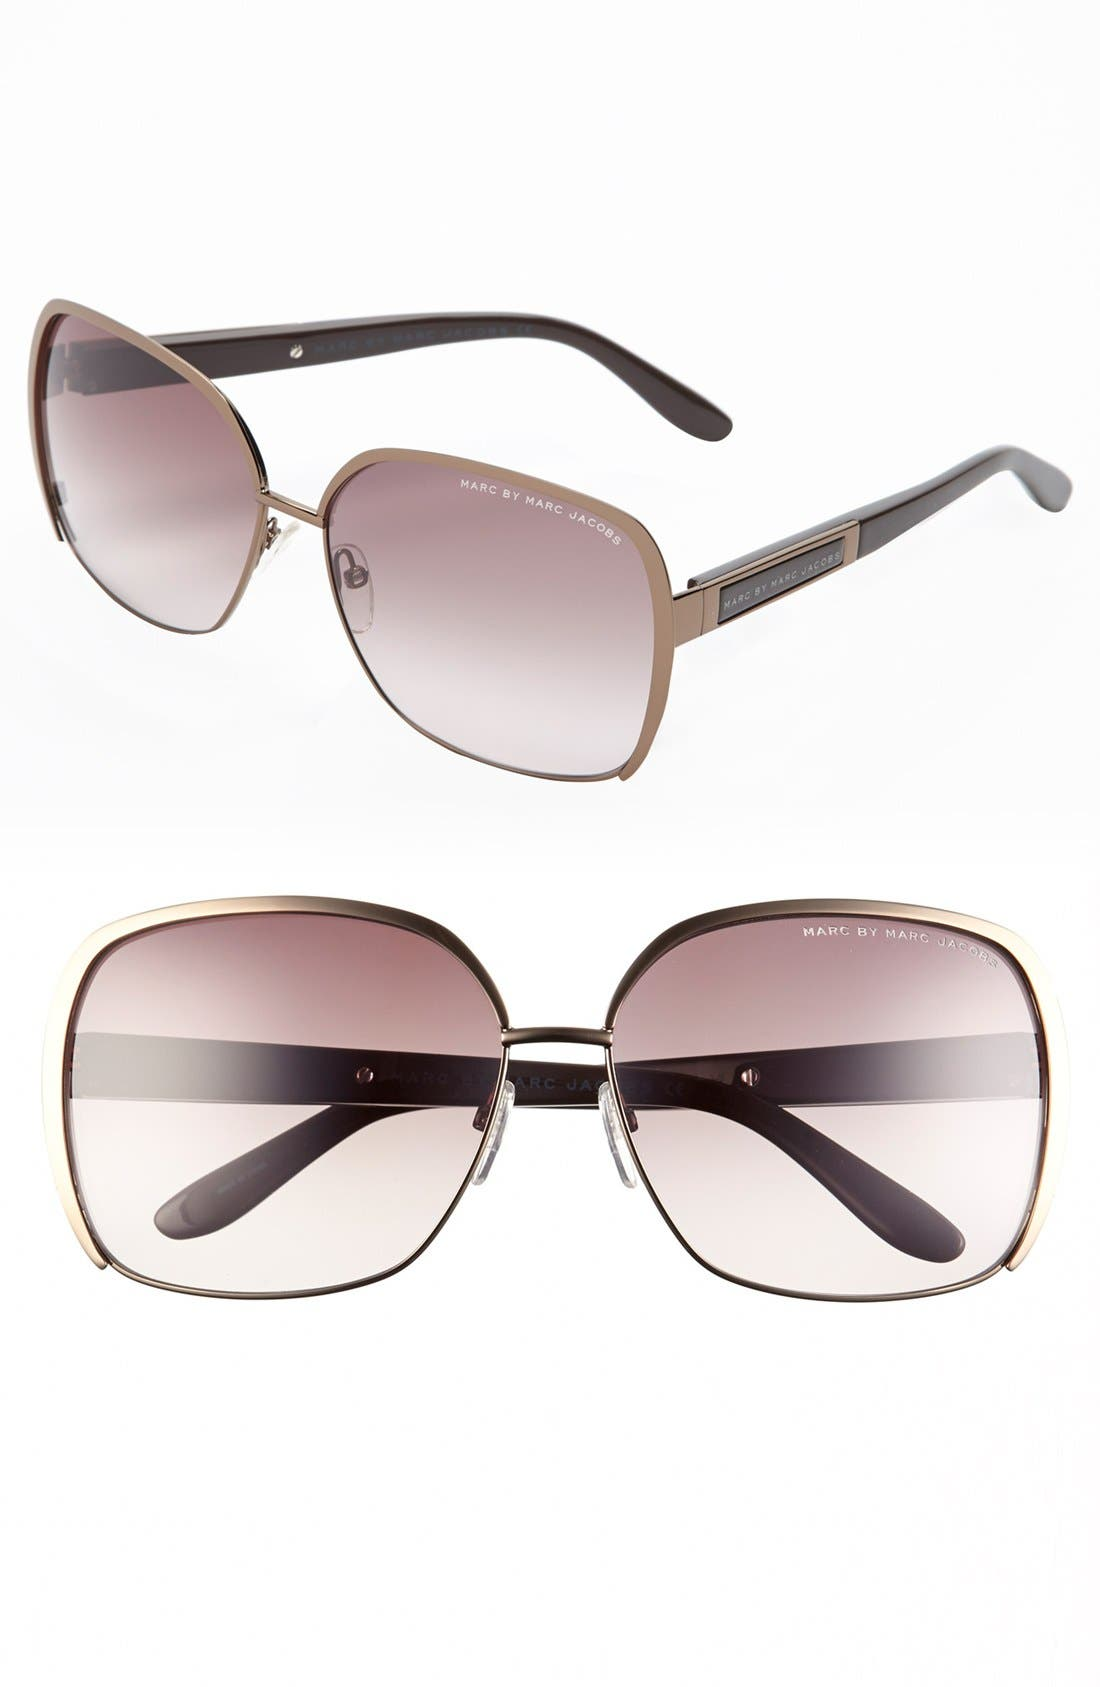 Main Image - MARC BY MARC JACOBS 61mm Retro Sunglasses